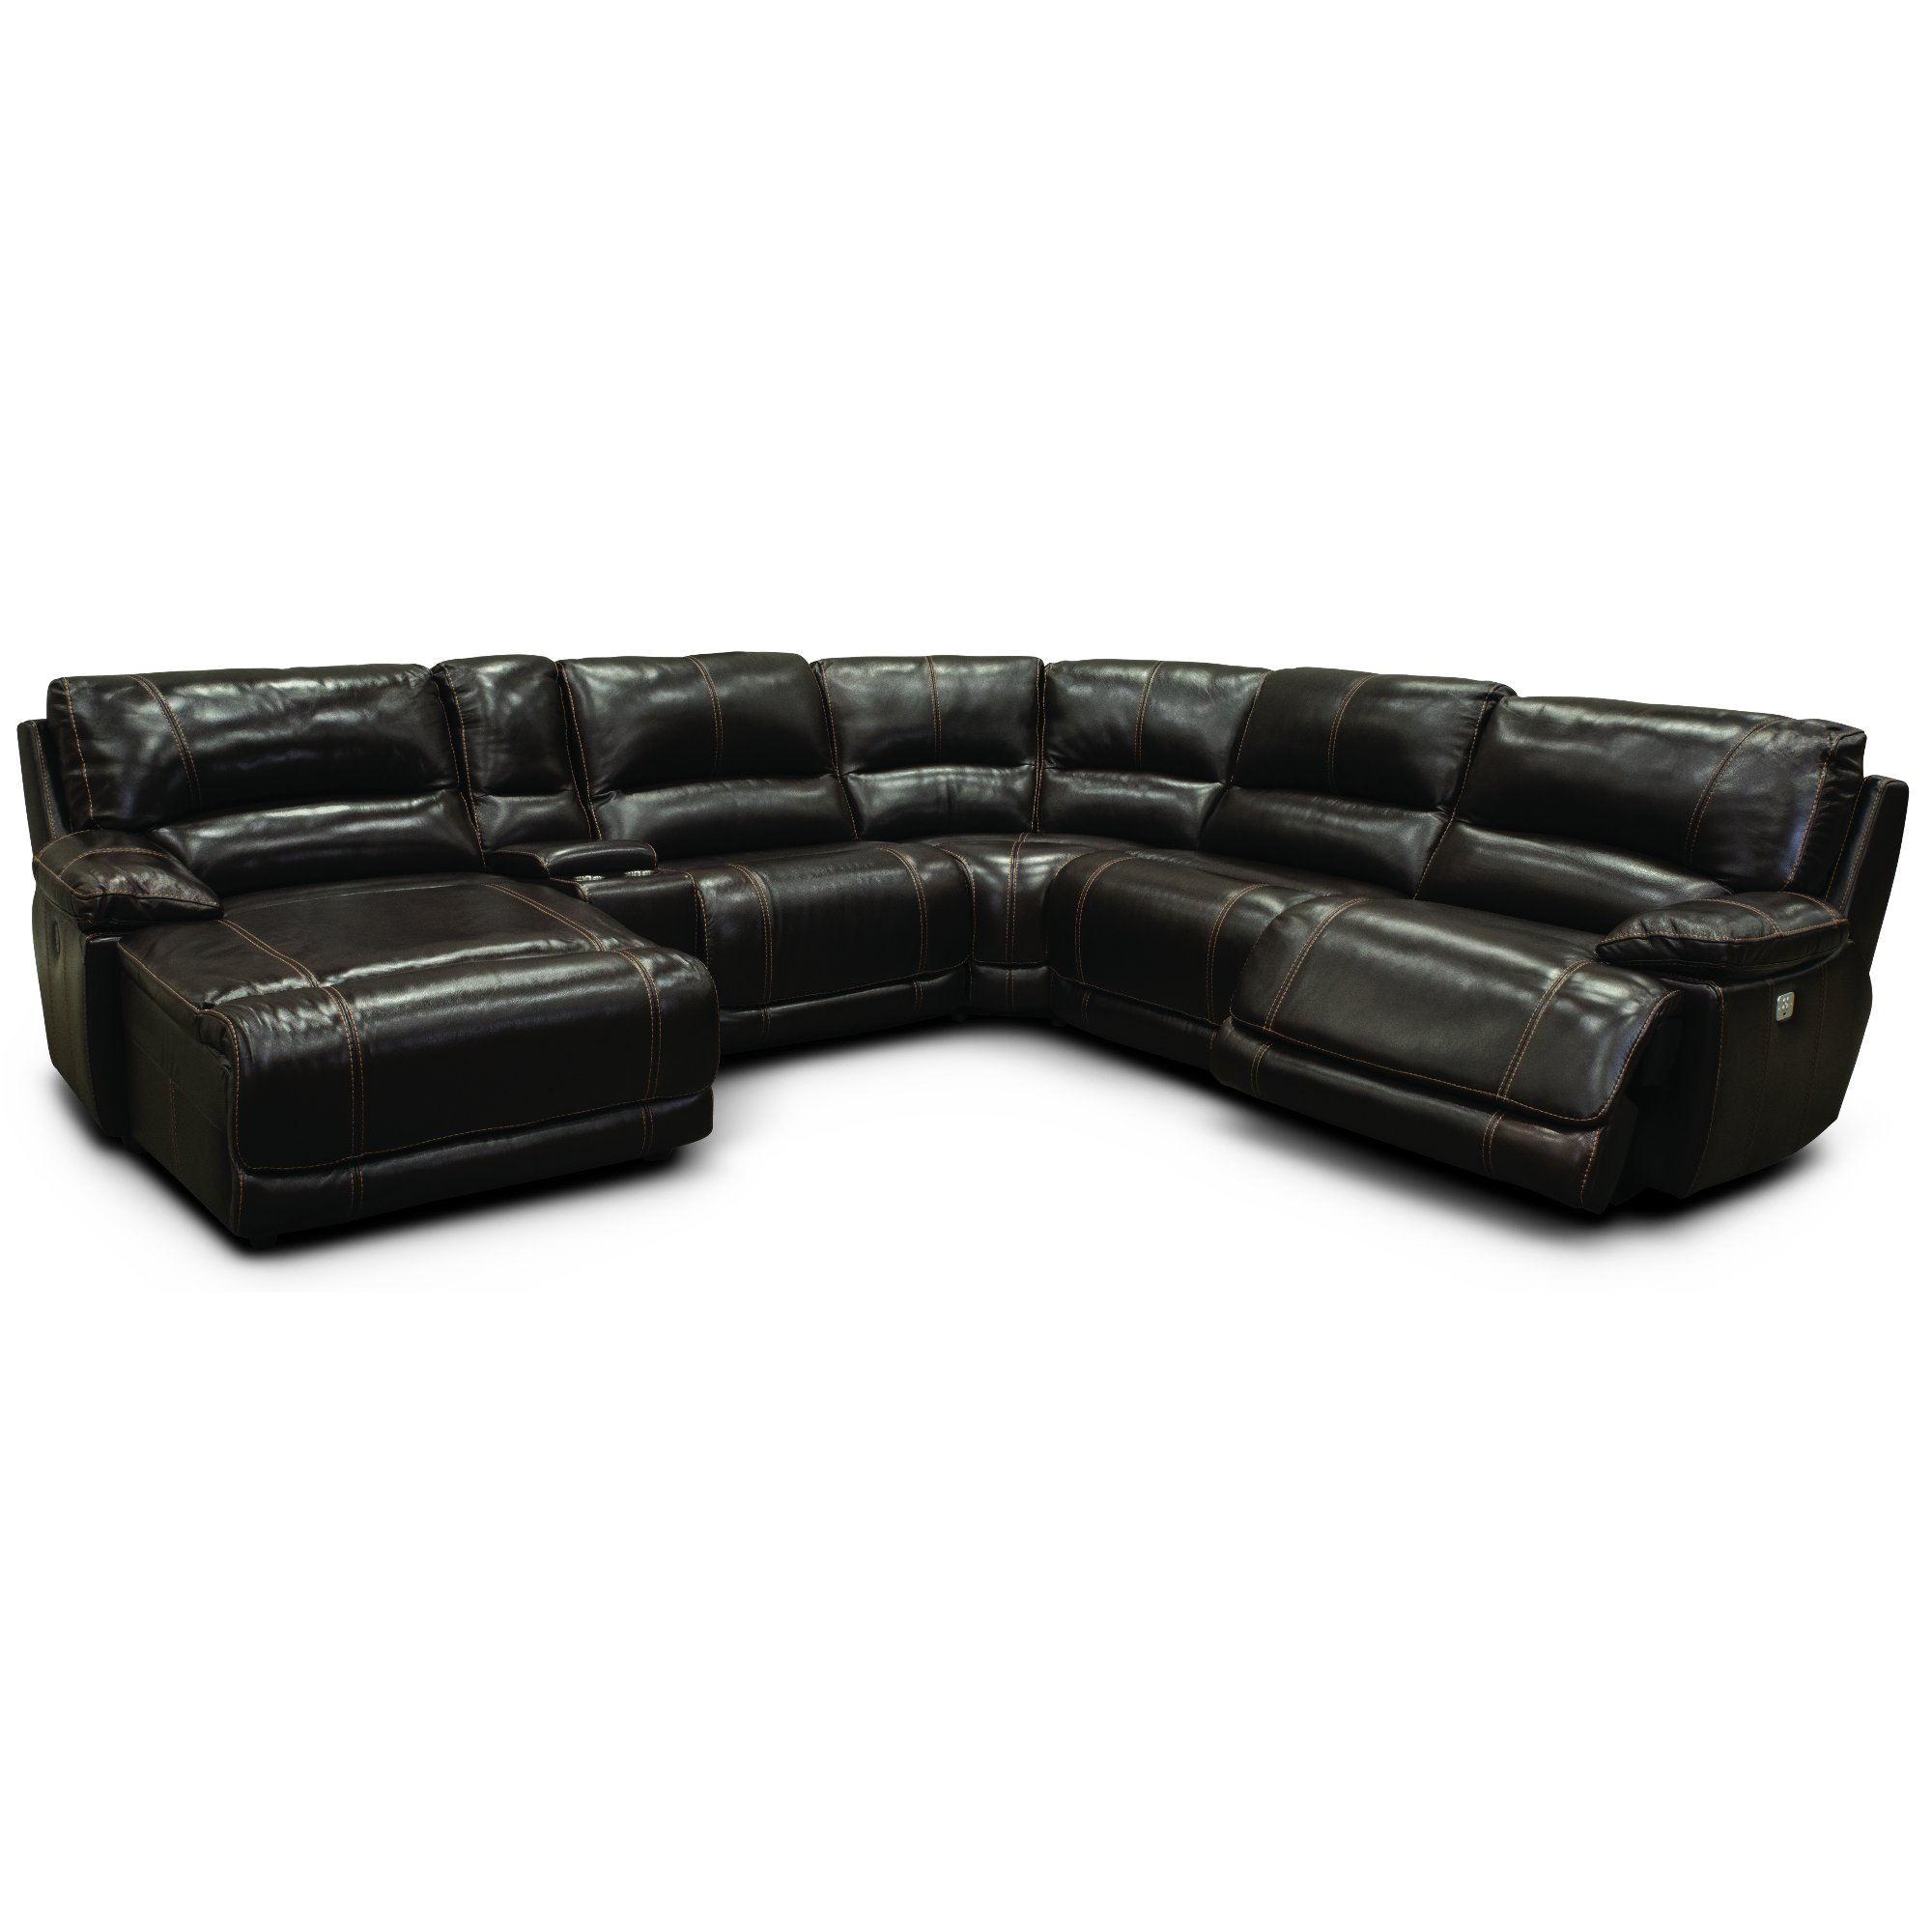 Brown Leather-Match Power Reclining Sectional Sofa - Brant | RC ...